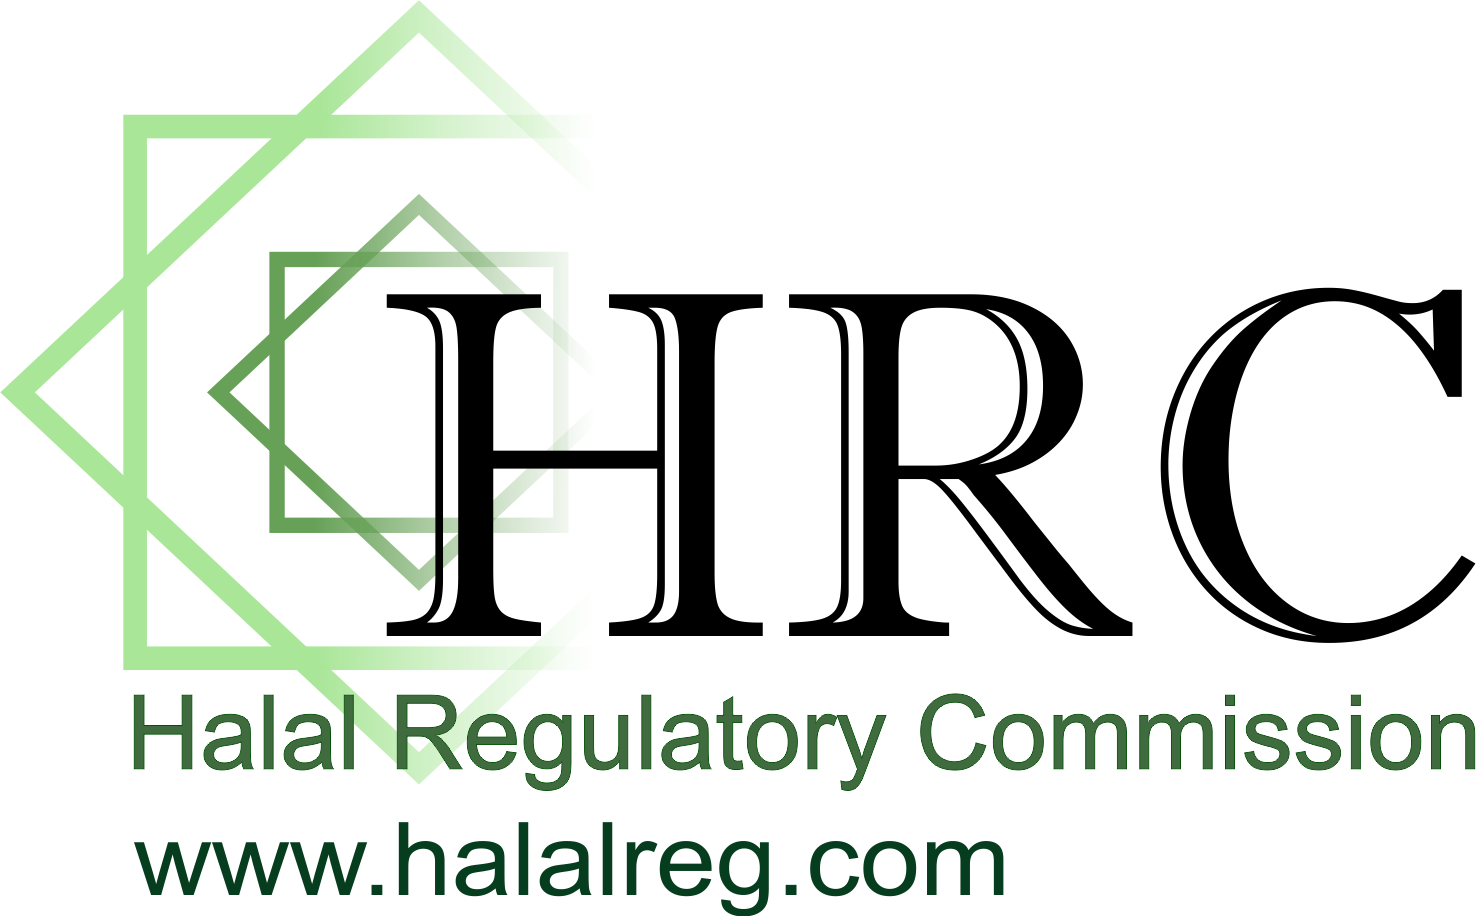 Halal Regulatory Commission